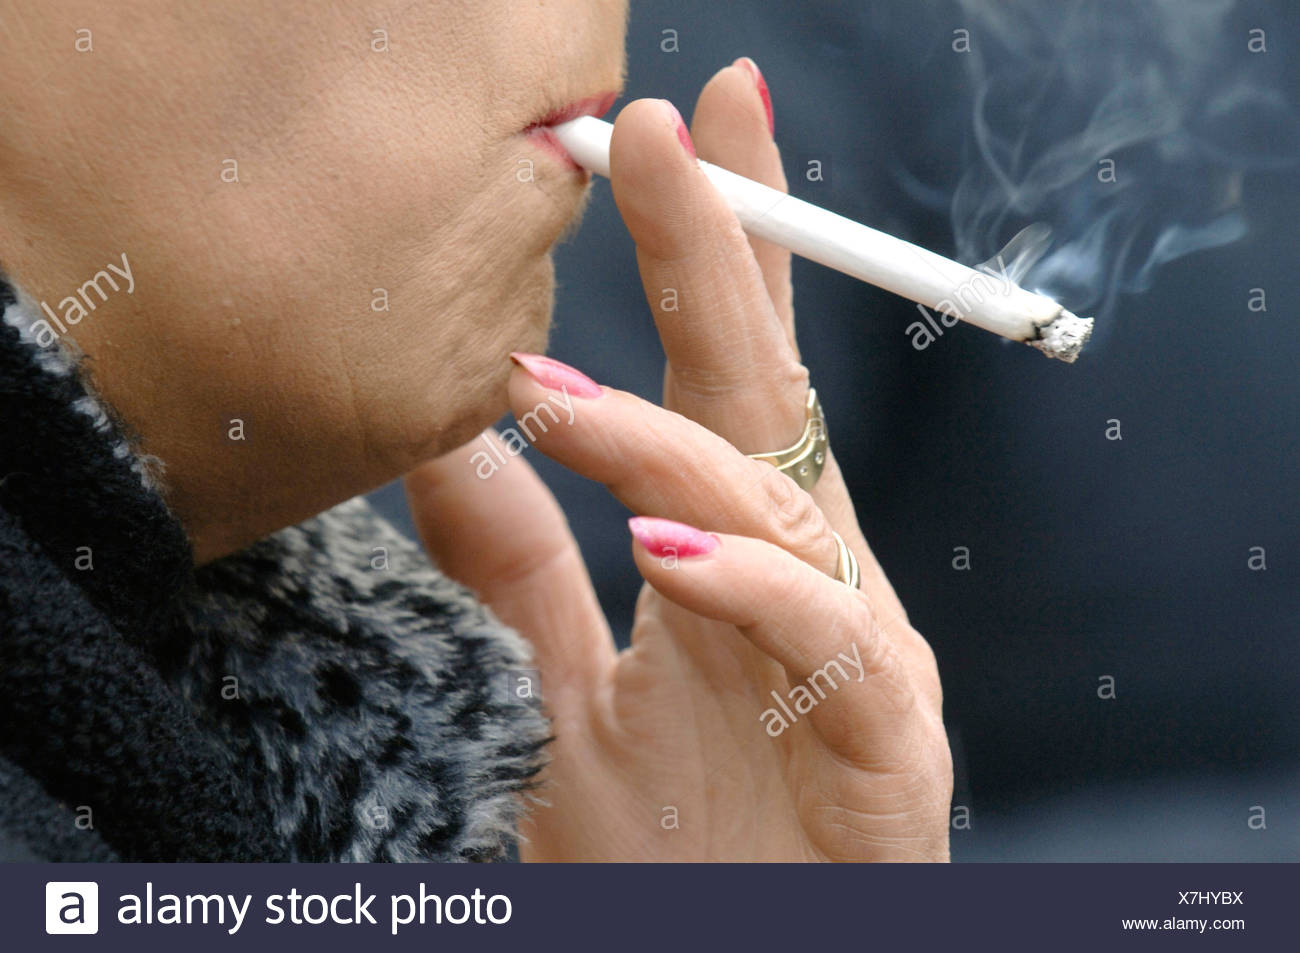 https://c1.alamy.com/comp/X7HYBX/smoking-elderly-woman-is-smoking-a-cigarette-X7HYBX.jpg